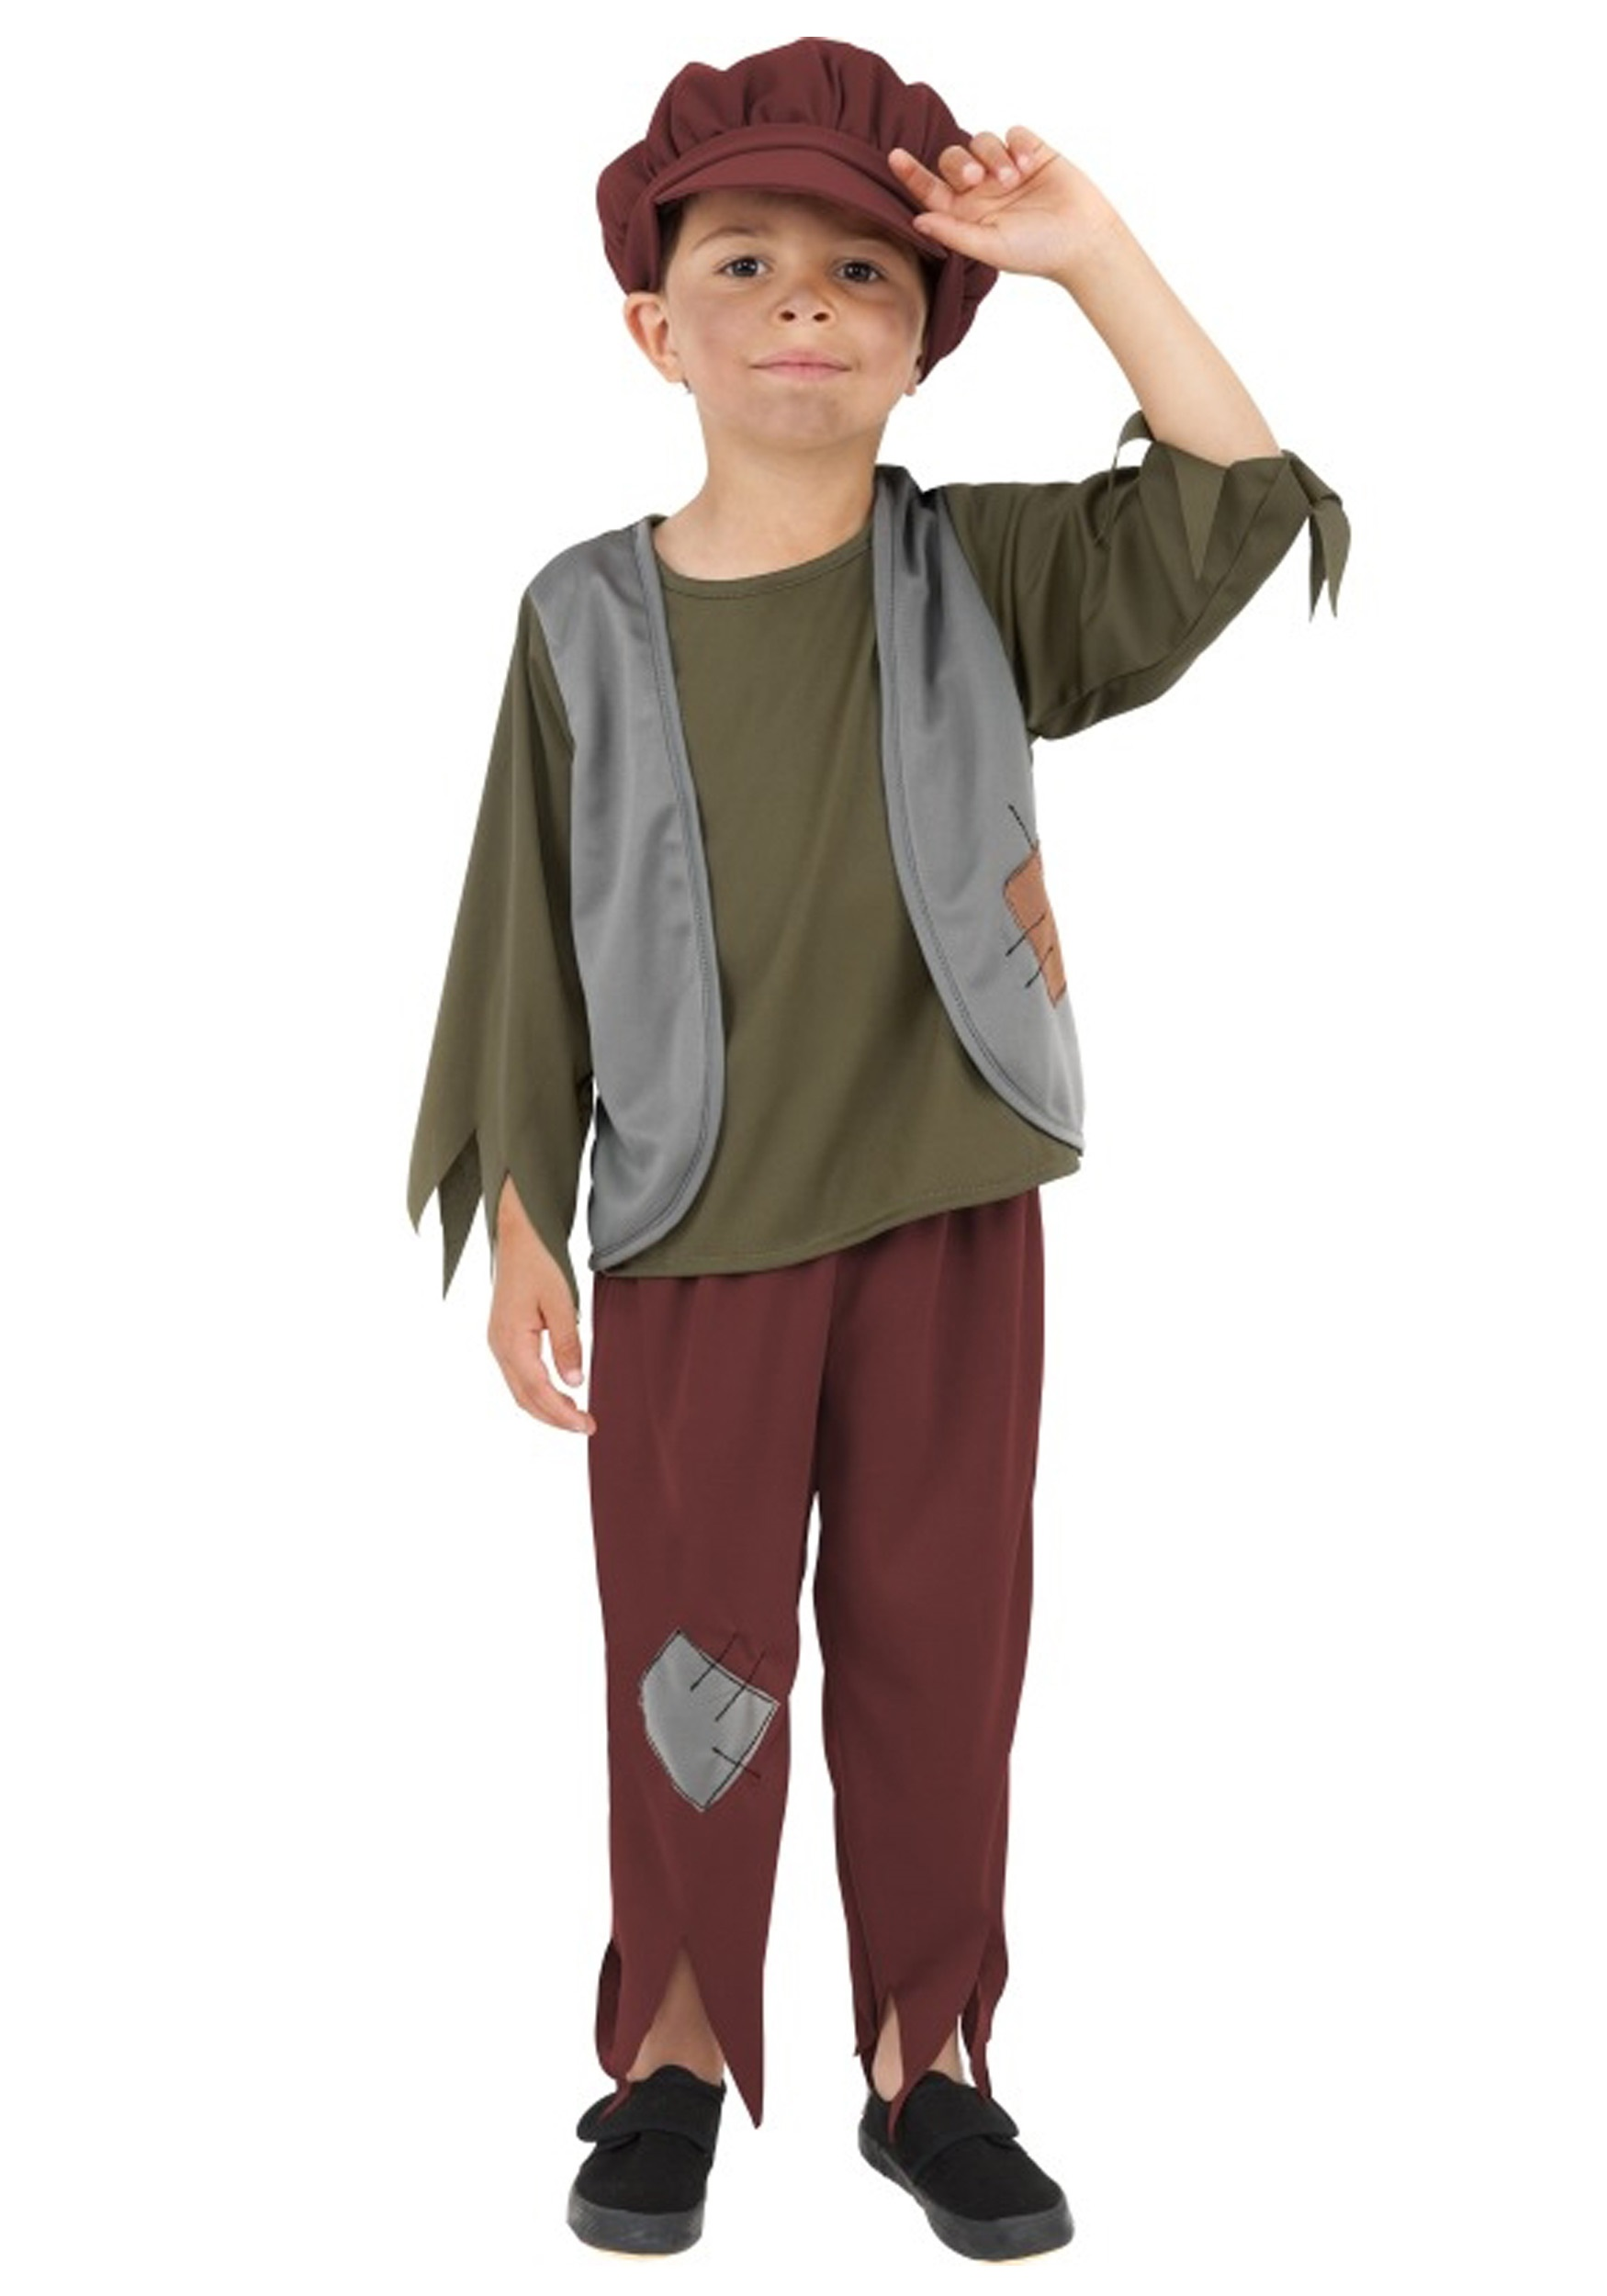 Southern belle victorian costumes southern belle halloween costume child victorian poor boy costume solutioingenieria Gallery